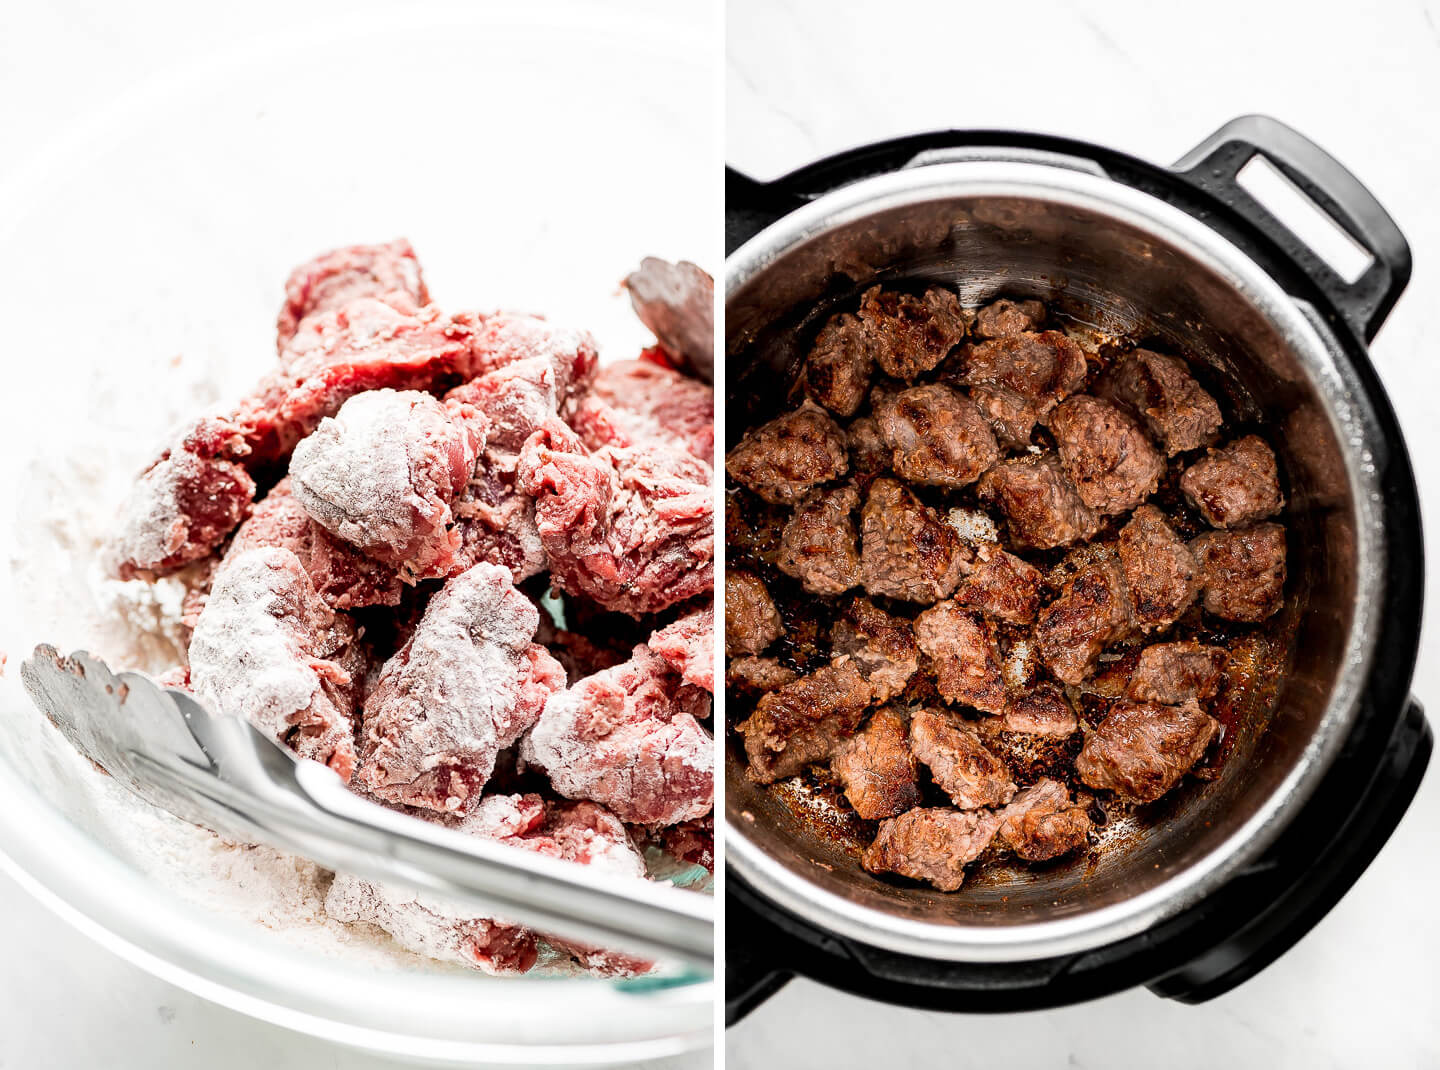 Diptych- Raw pieces of beef in a bowl coated in flour; Browned beef in an Instant Pot.